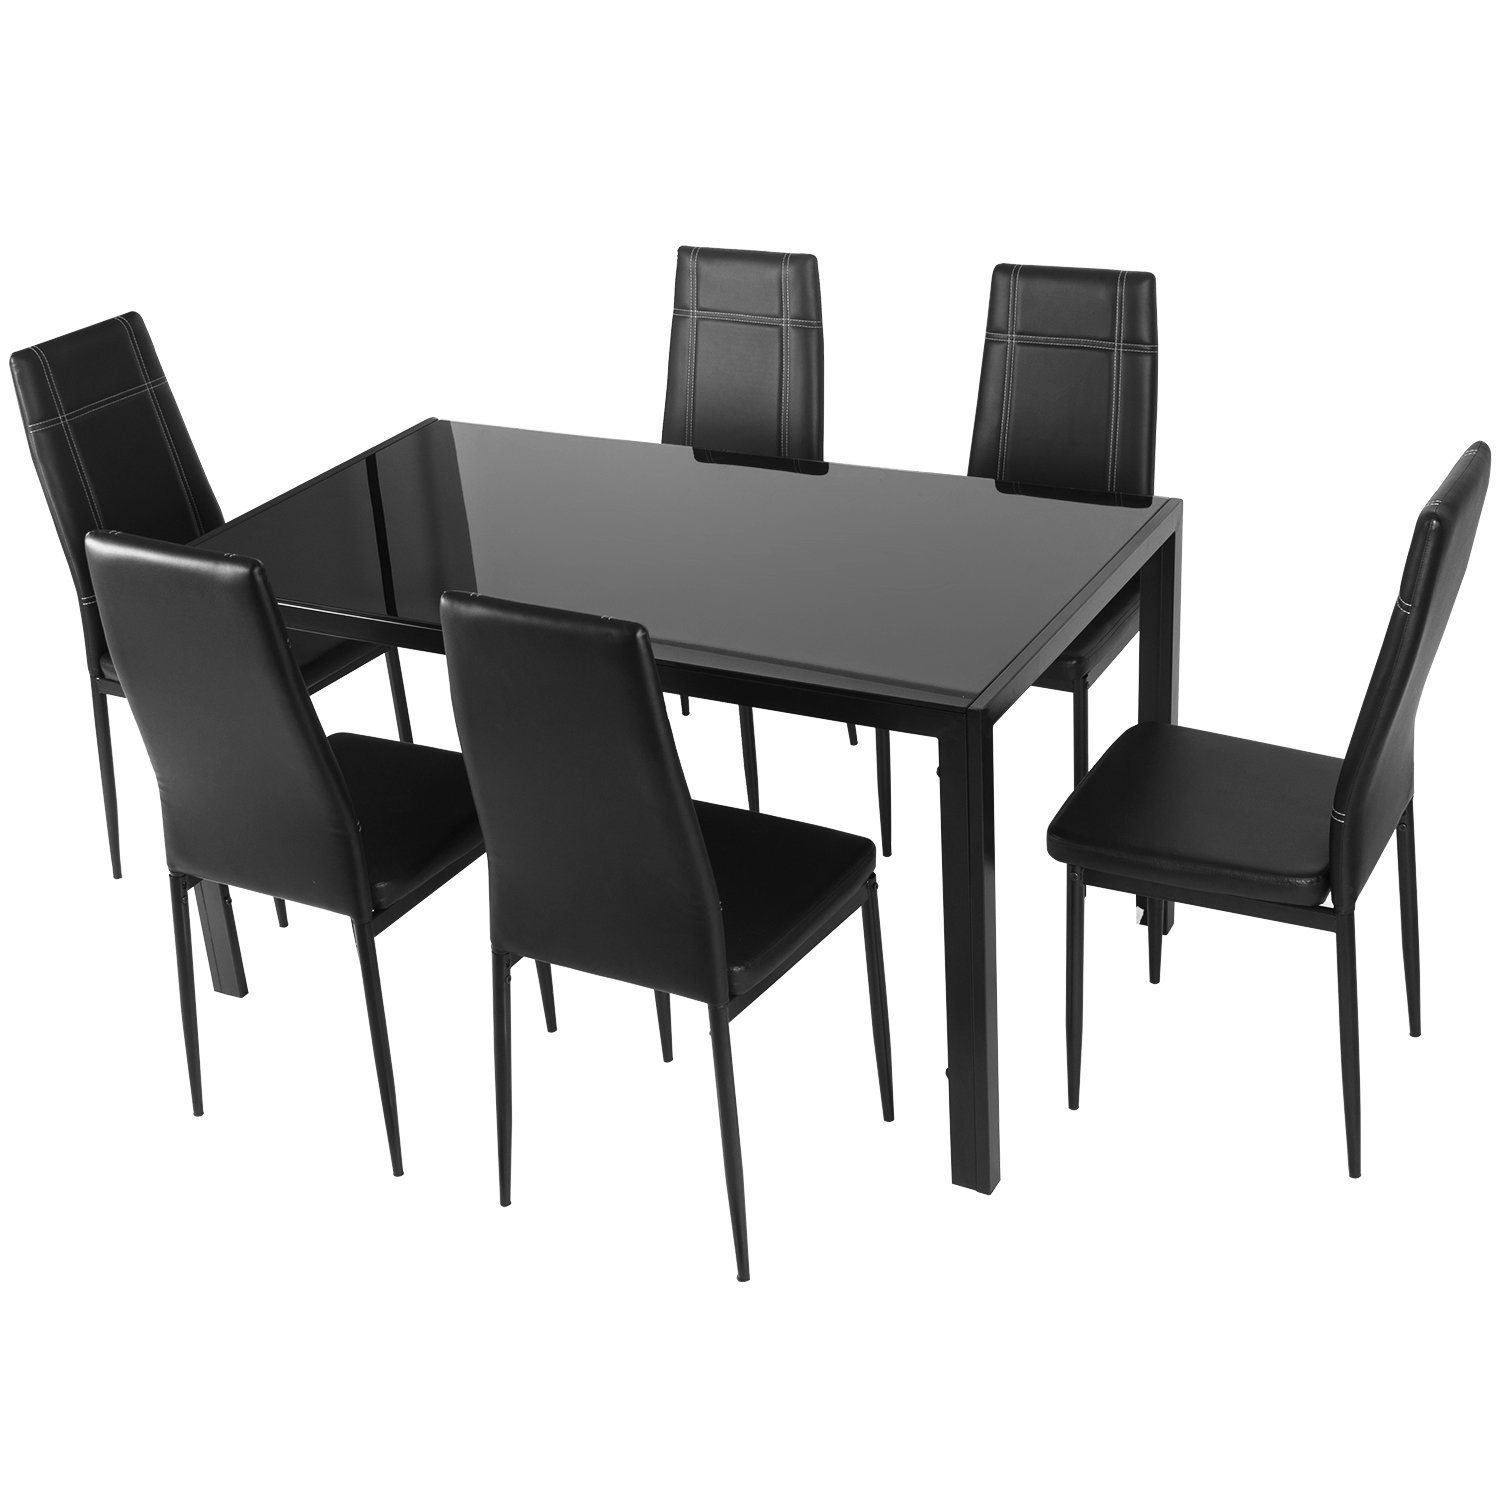 Maynard 7 Piece Dining Set Throughout Best And Newest Travon 5 Piece Dining Sets (View 9 of 20)